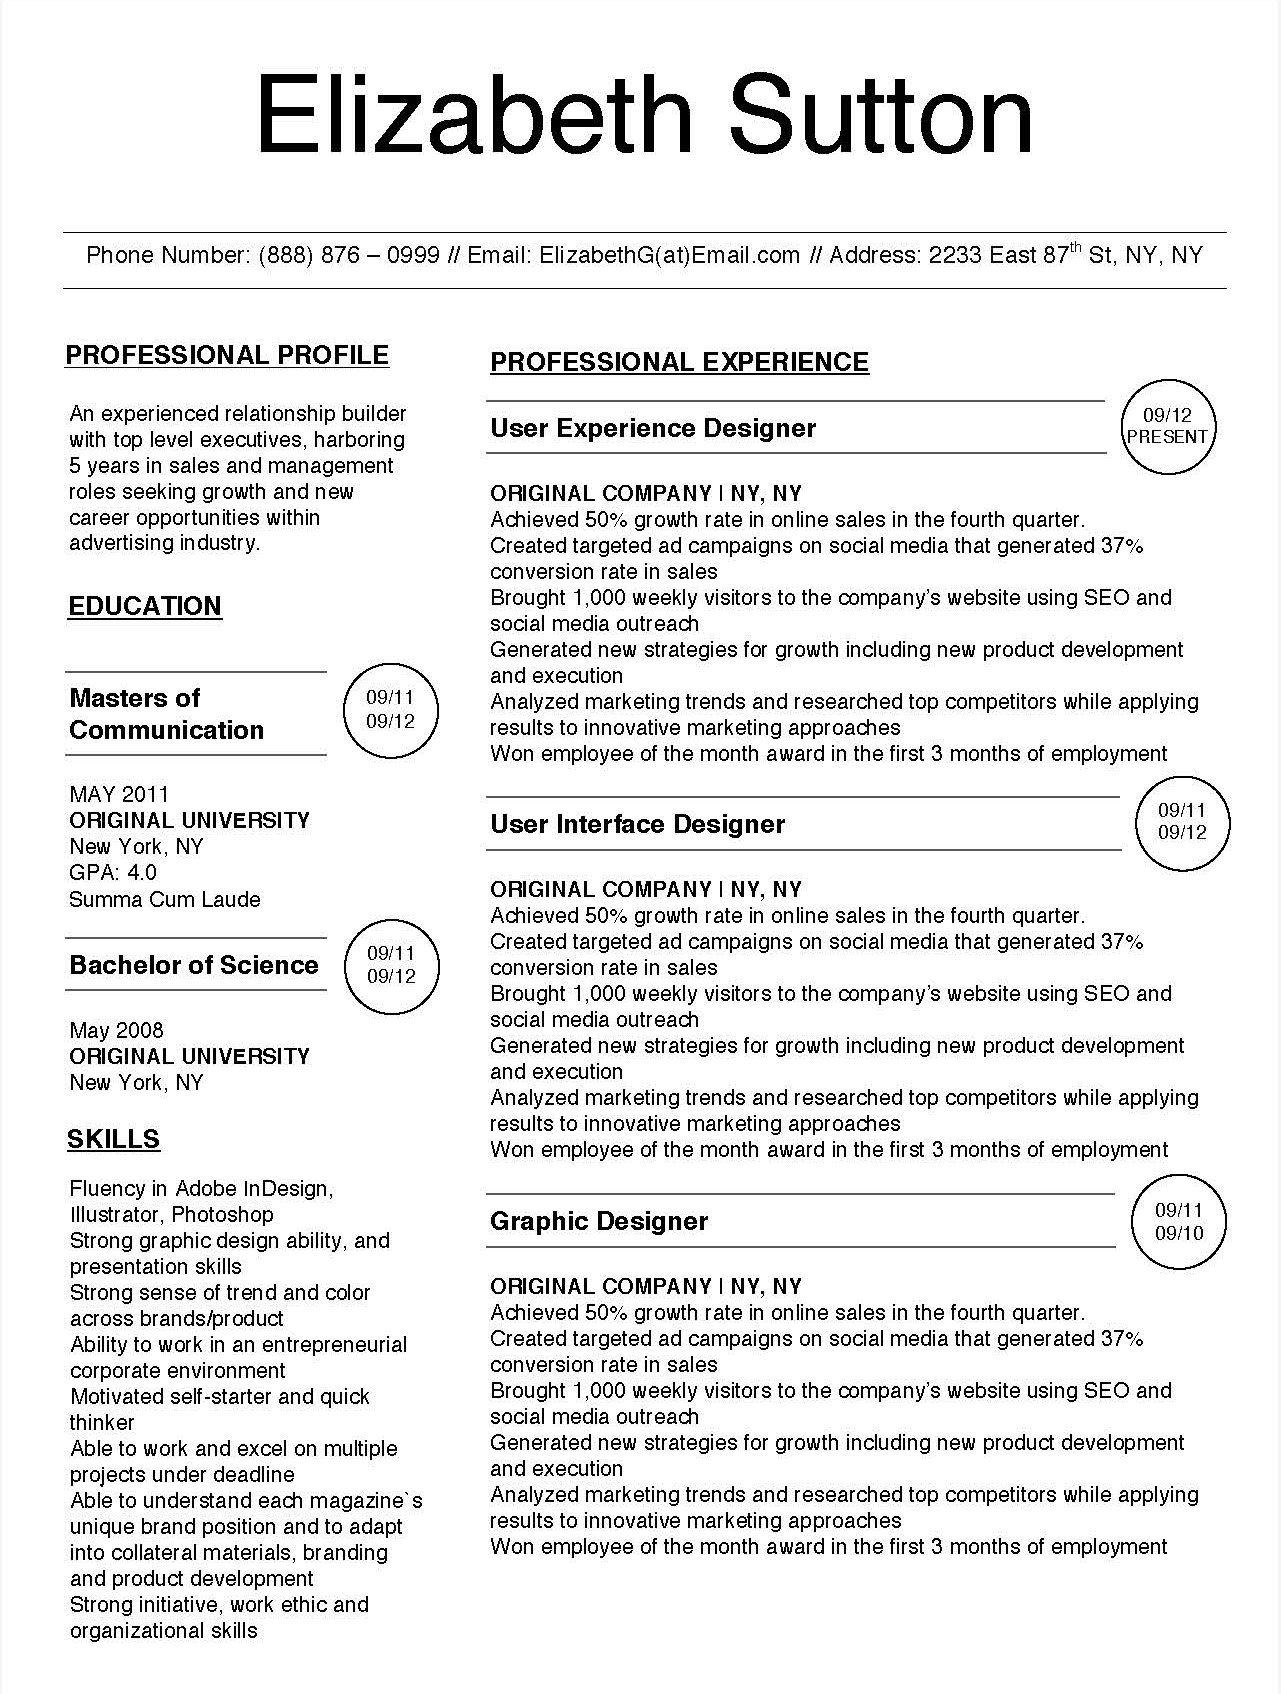 Elizabeth Sutton - Downloadable Resume Template for Microsoft Word and Apple Pages